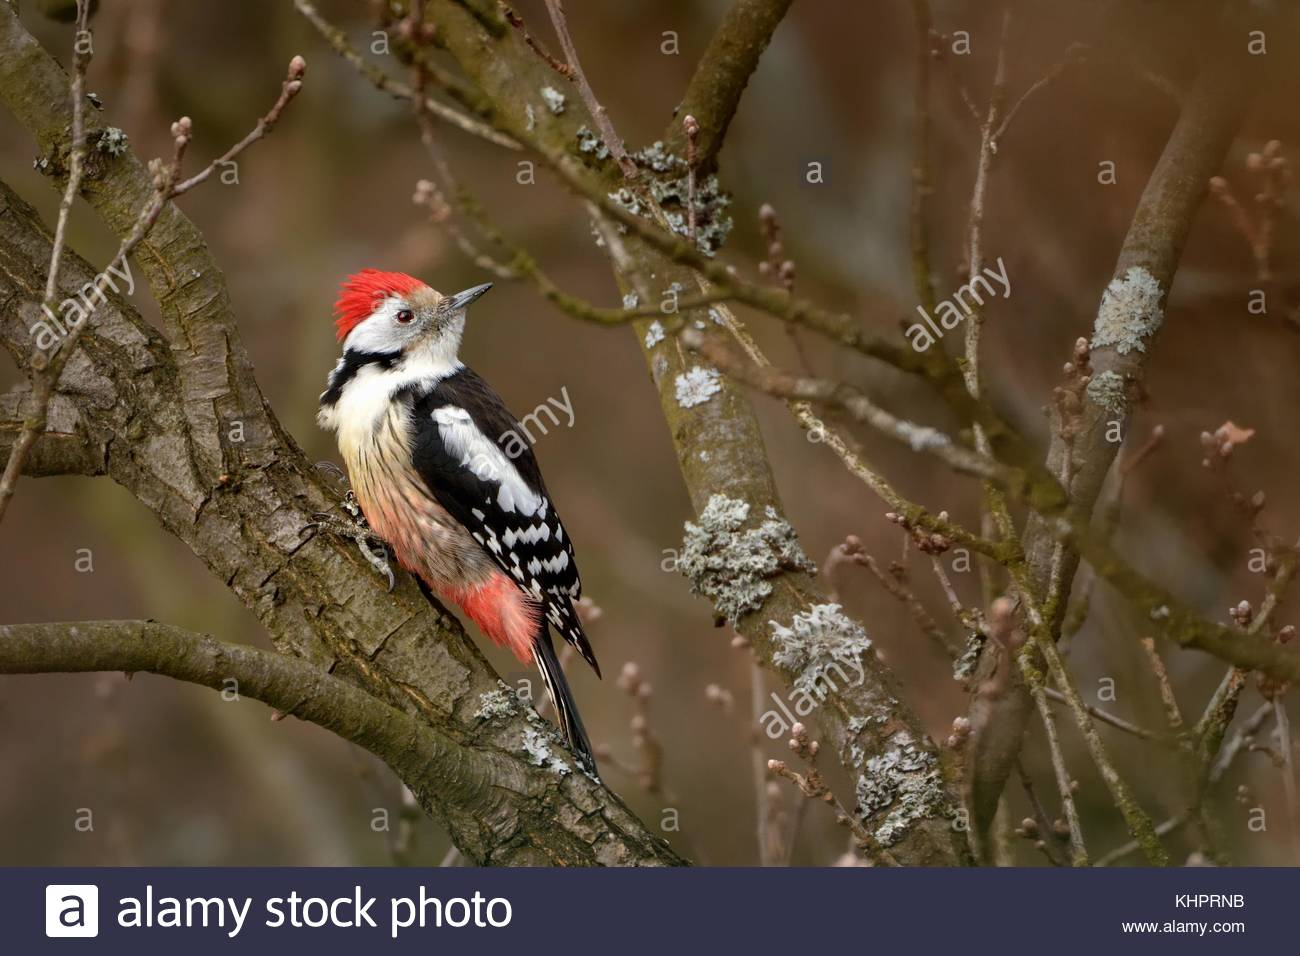 Middle Spotted Woodpecker (Dendrocopos medius) perched on a branch of a tree without leaves. - Stock Image